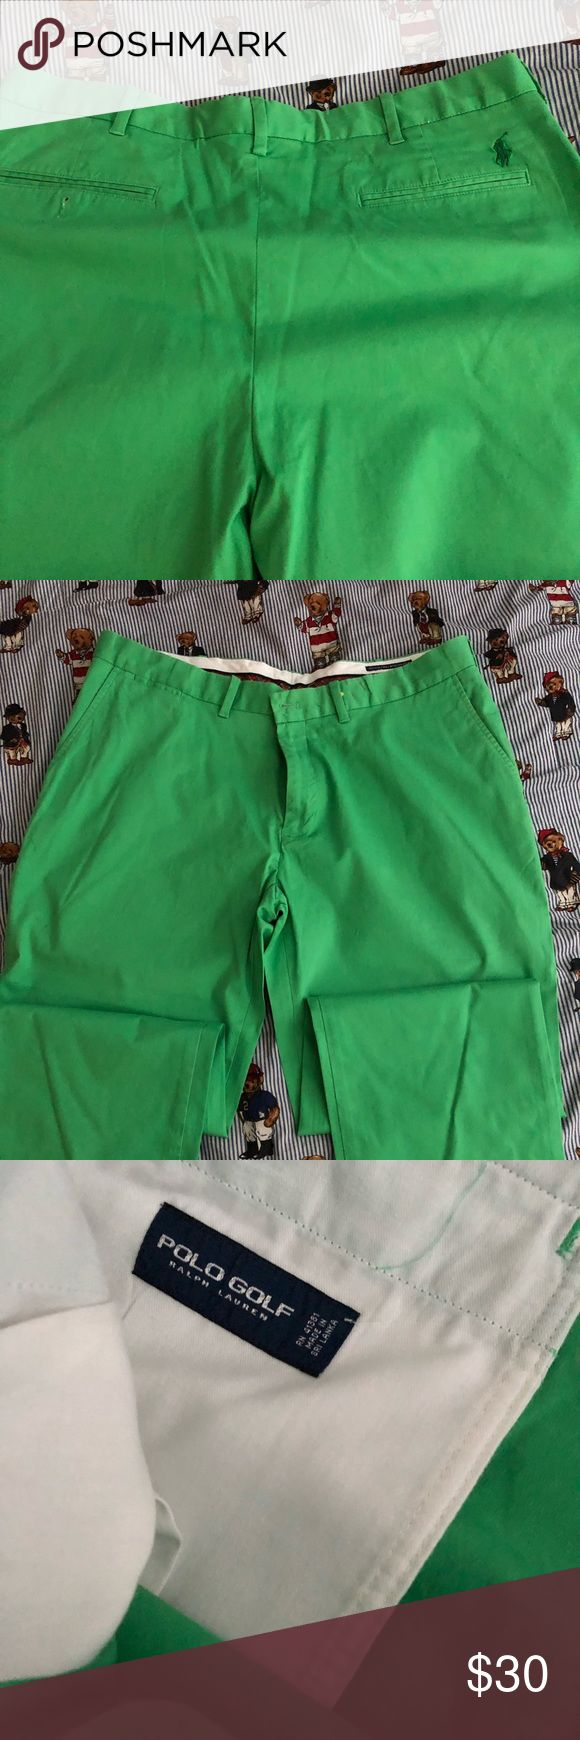 Polo Ralph Lauren Pants Polo Ralph Lauren Pants in excellent condition  Worn A few times Polo by Ralph Lauren Pants Chinos & Khakis